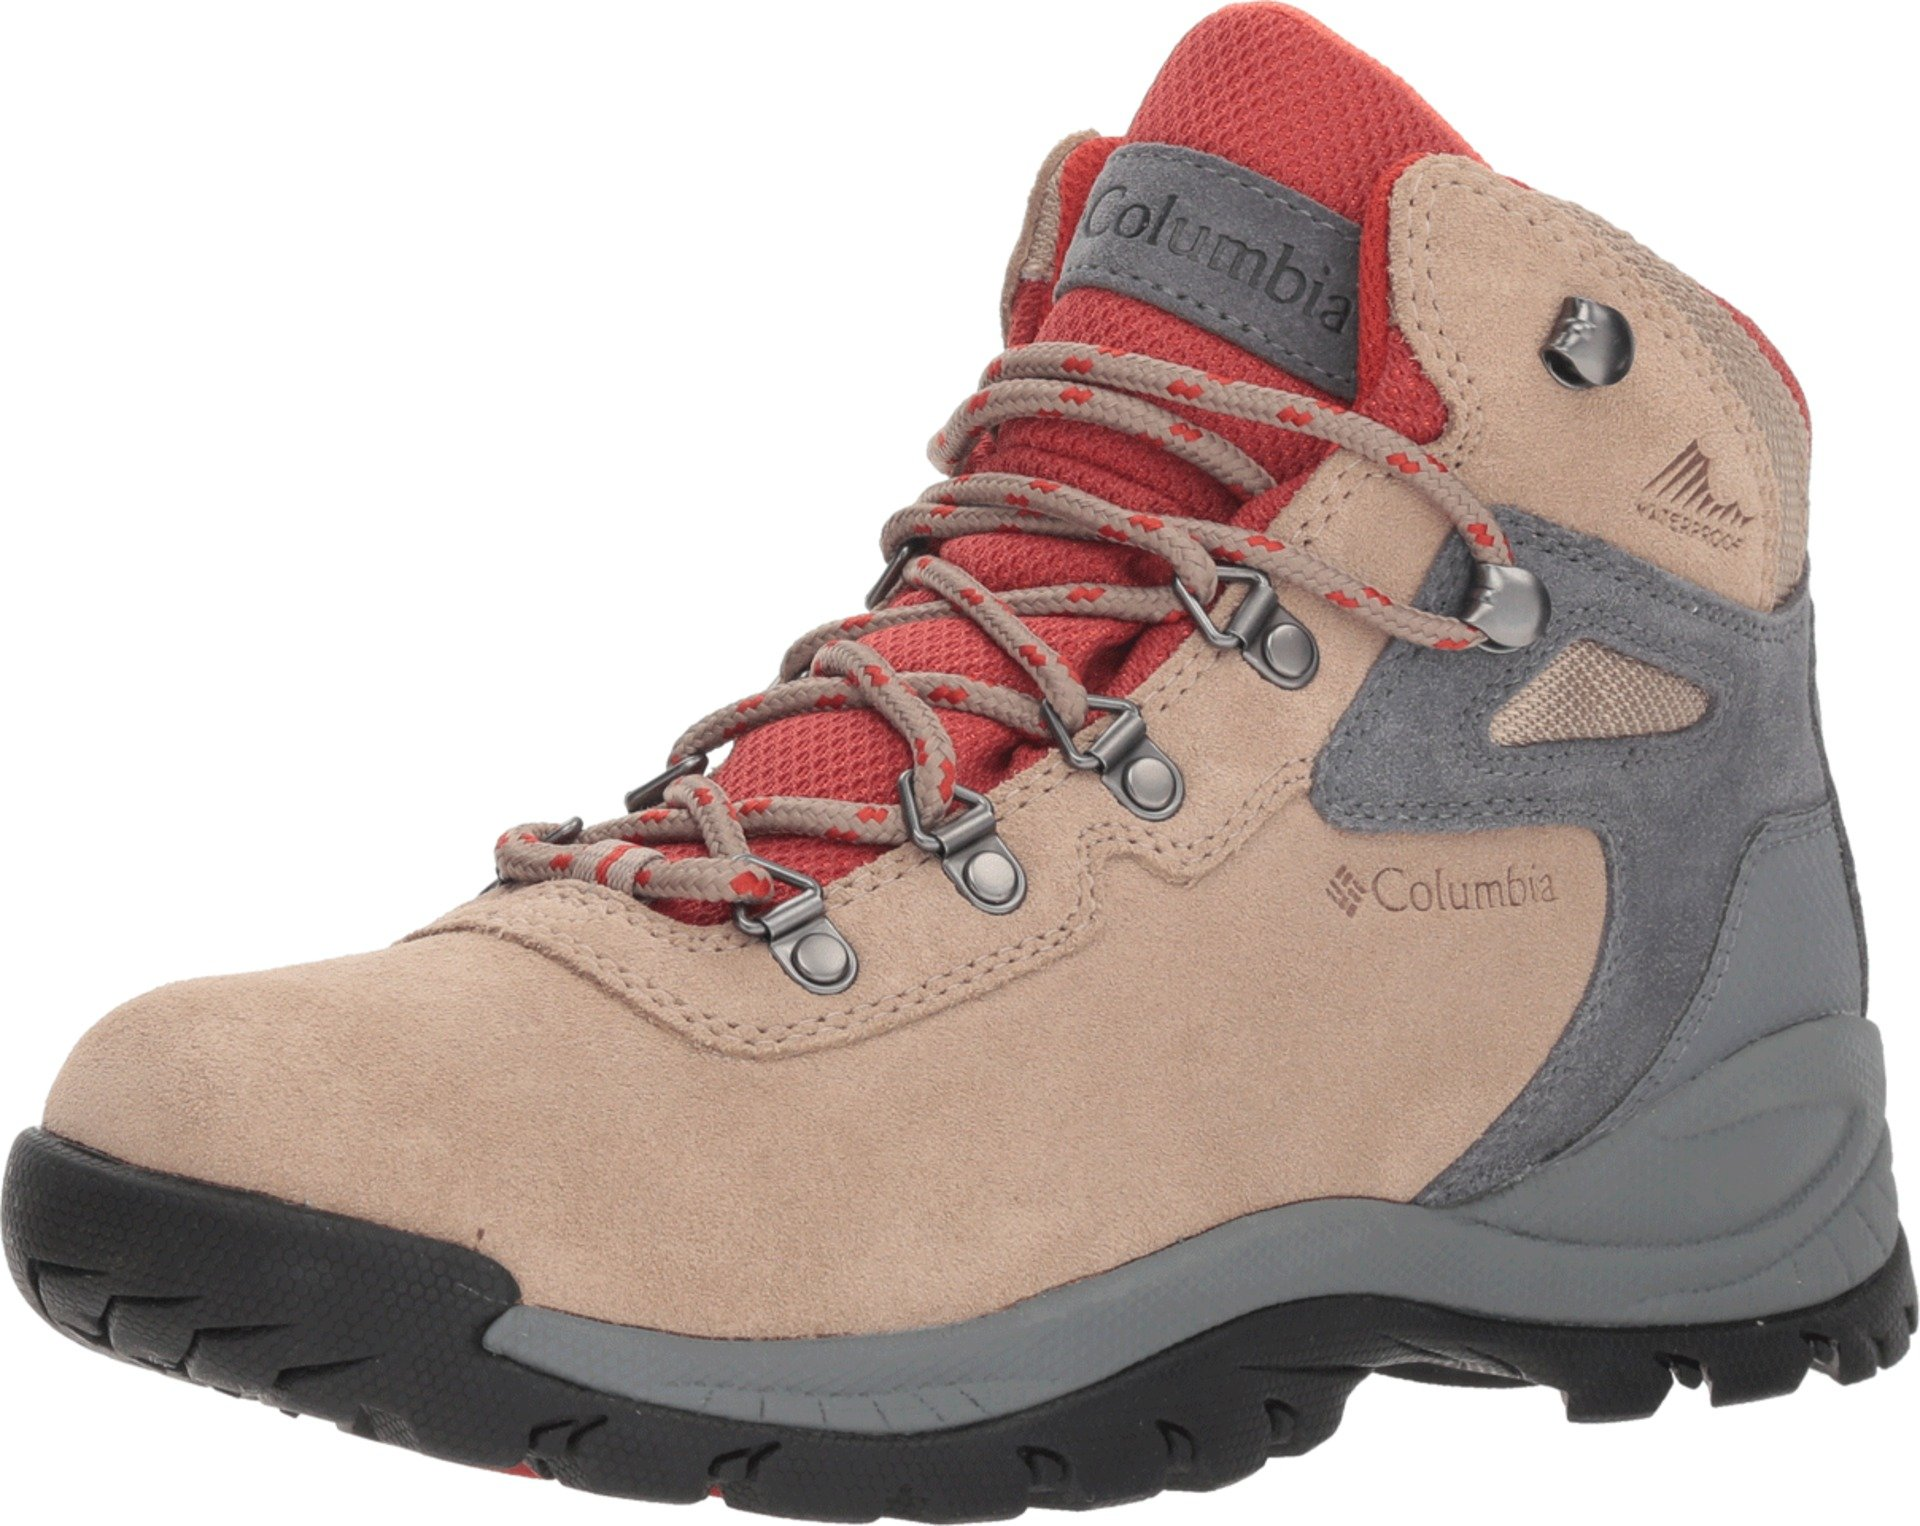 Columbia Women's Newton Ridge Plus Waterproof Amped Hiking Boot, Oxford Tan, Flame, 8.5 Wide US